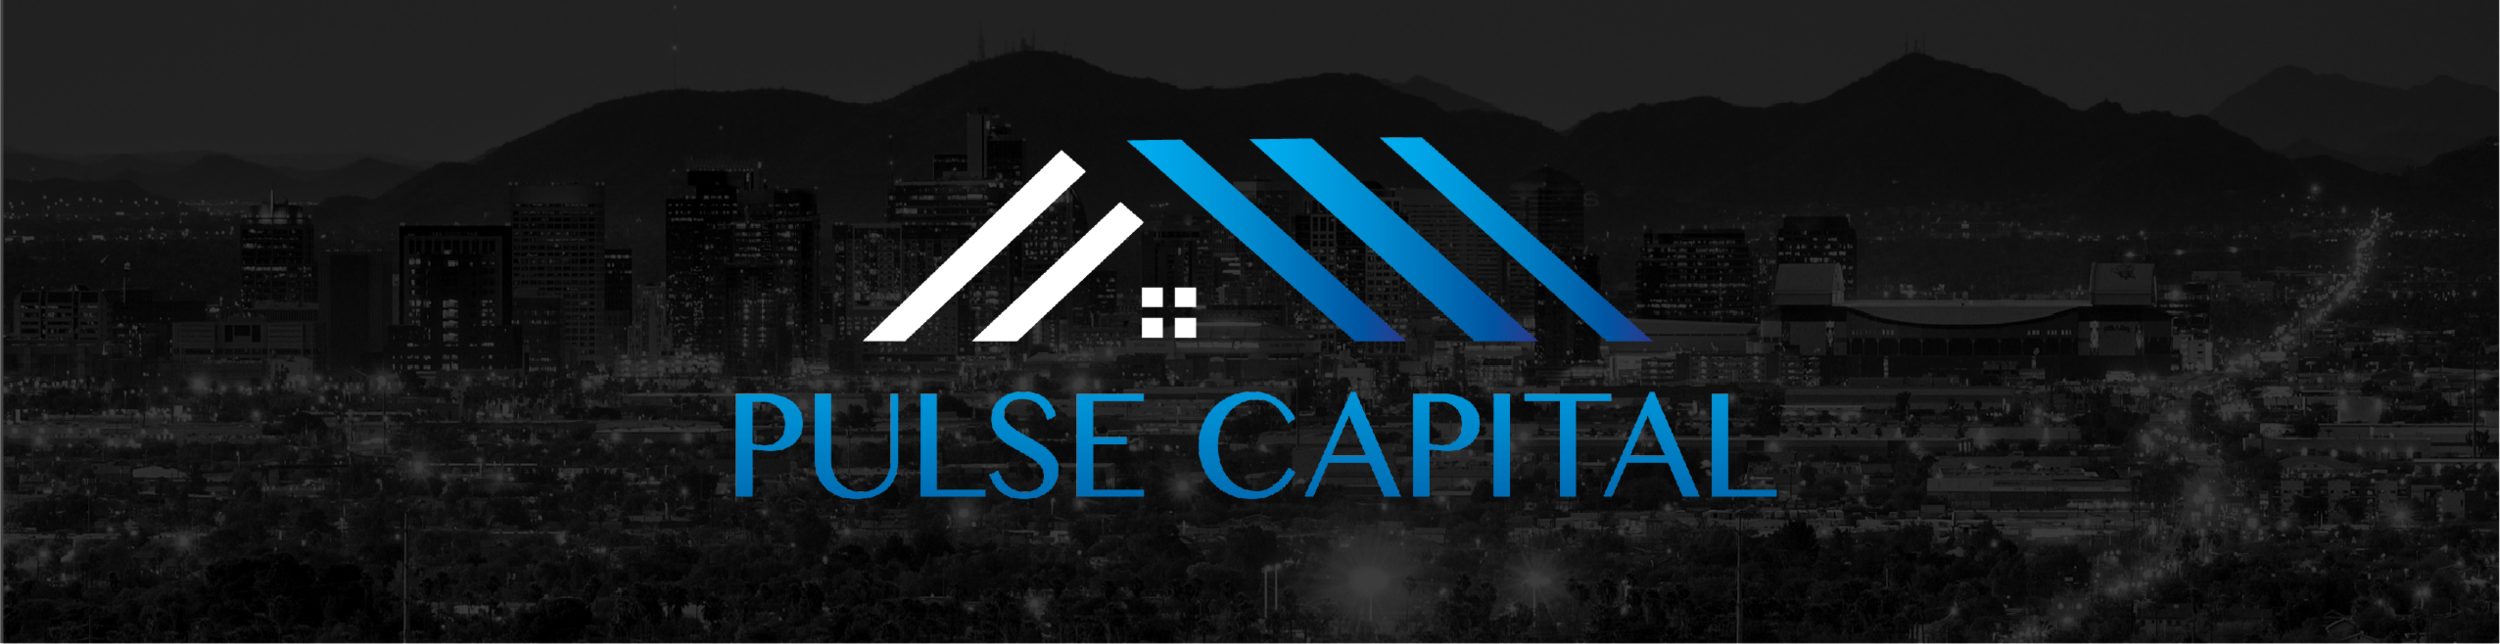 Pulse Capital Banner.png